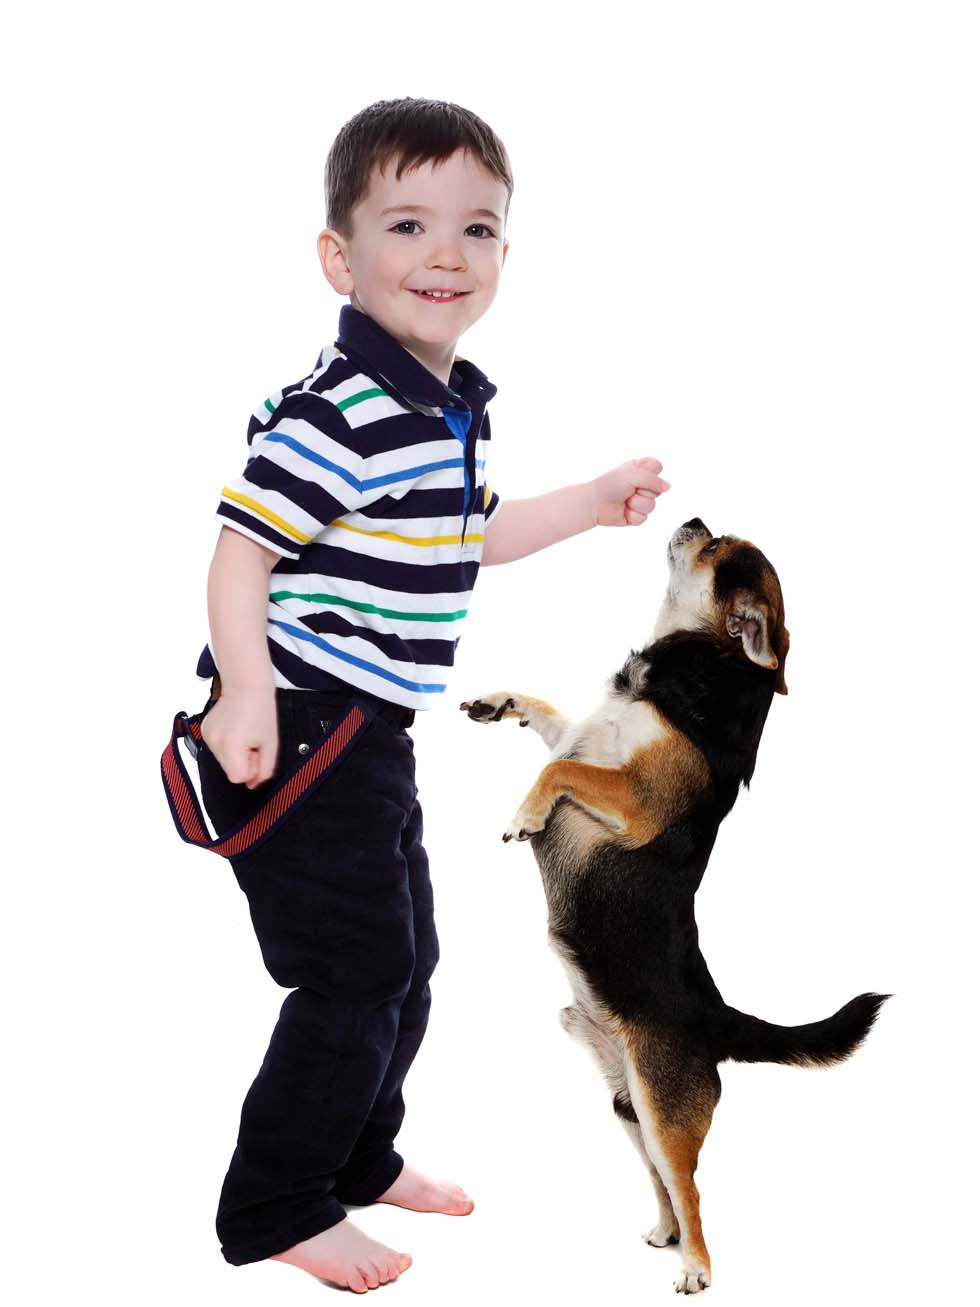 Pet Photography, boy and dog, dog and child